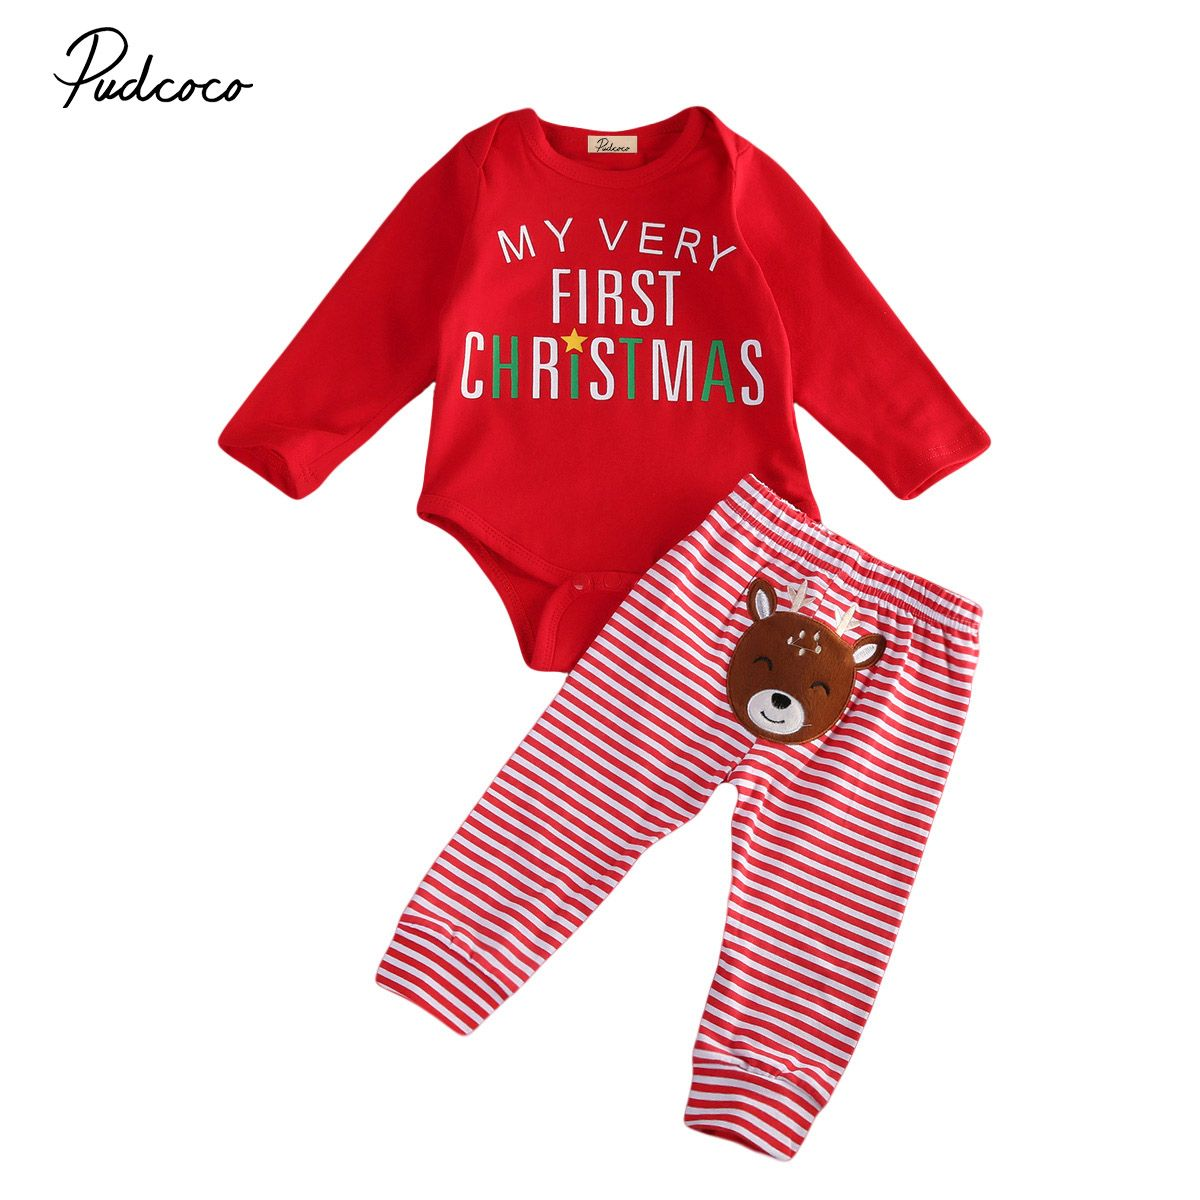 0a99446b2 PUDCOCO Brand Clothes Cotton Blend Christmas Newborn Baby Clothes Boys Girls  Clothes Romper Striped Pants Deer